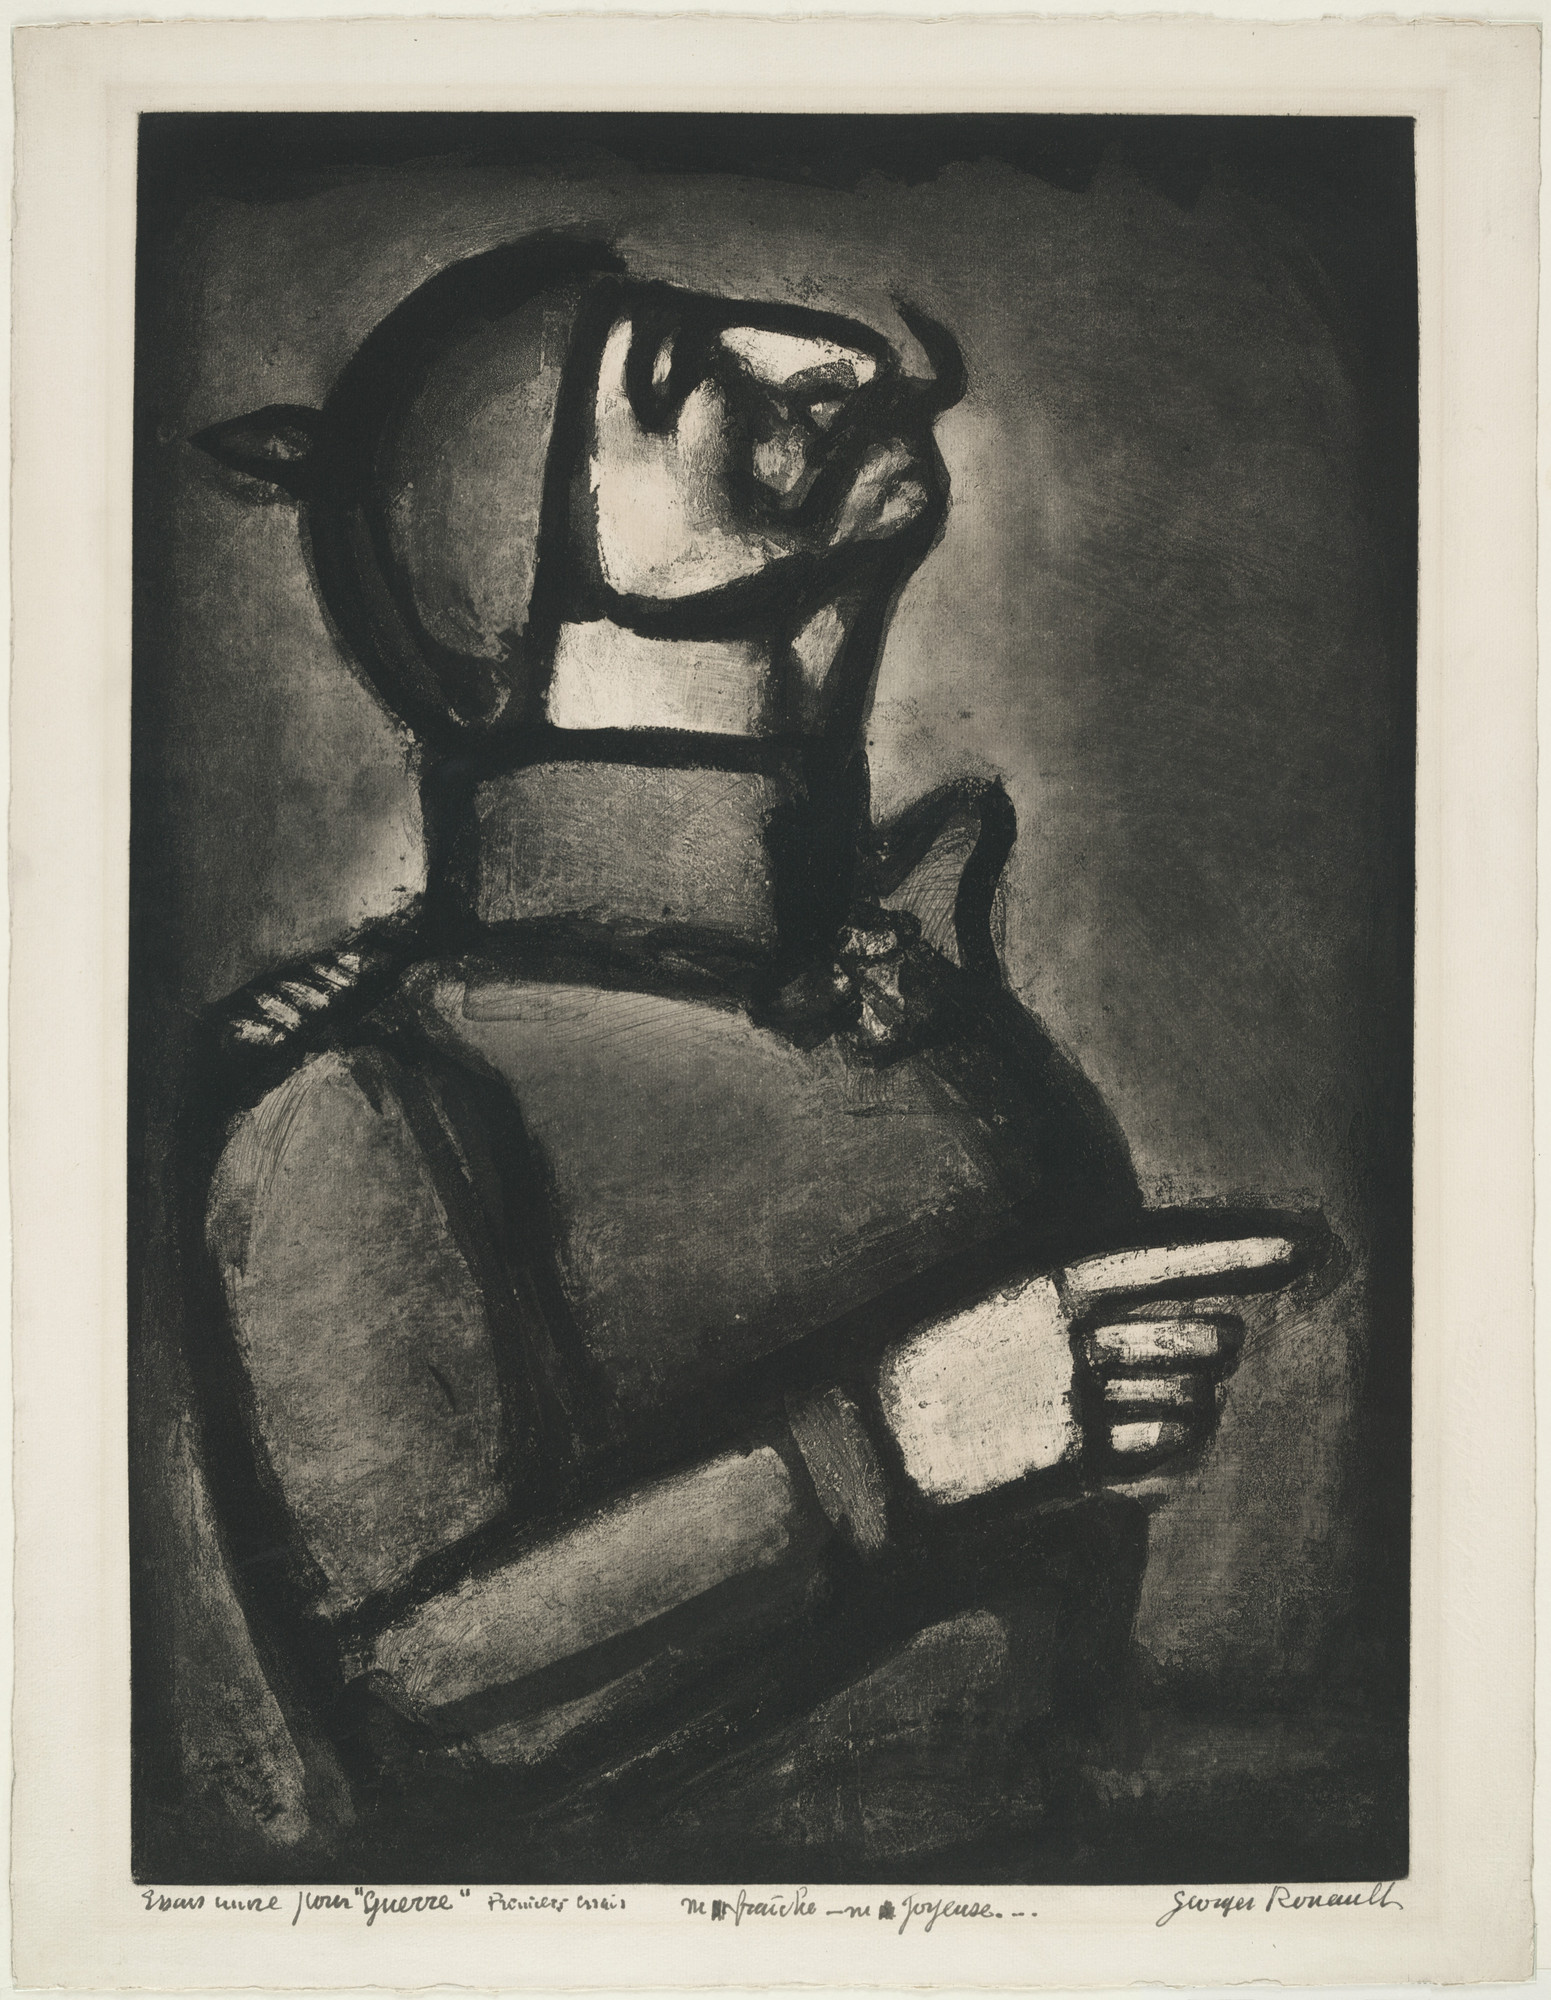 Georges Rouault. Plus le coeur est noble, moins le col est roide (The Nobler the Heart, the Less Stiff the Collar) for the illustrated book Miserere. 1926, published 1948